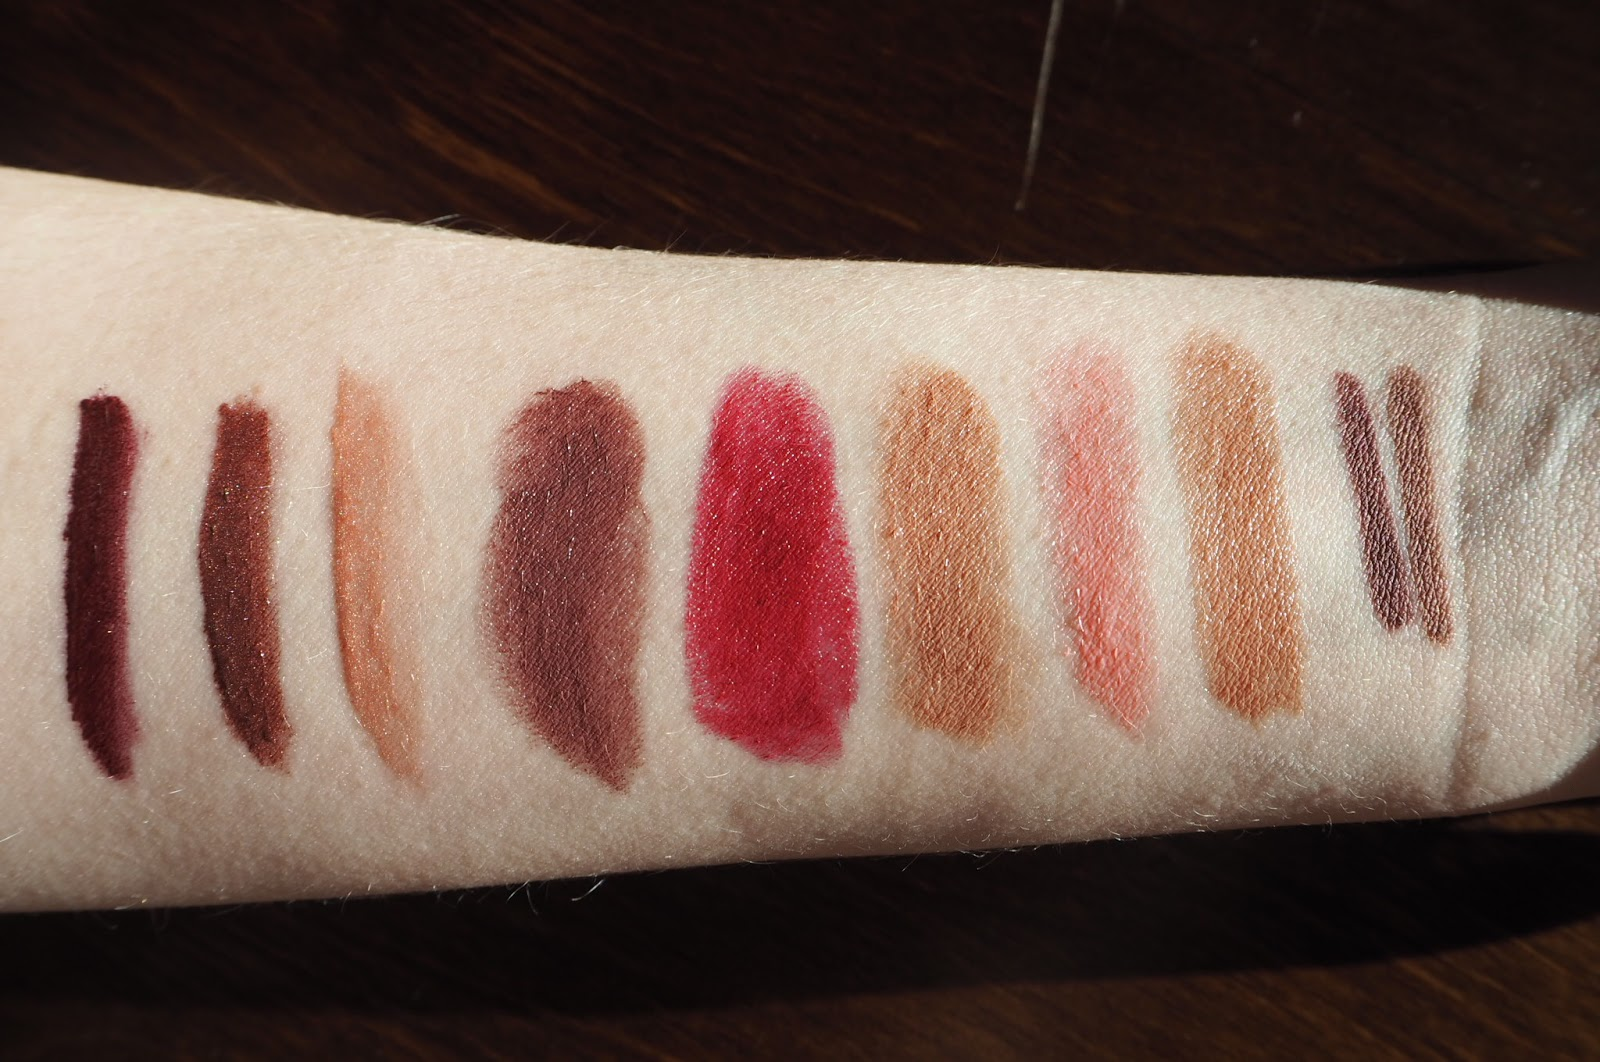 Revlon Swatches Left to right: Ultra HD Matte Lipcolour in Infatuation, Ultra HD Metallic Matte Lipcolours in Shine and Gleam, Super Lustrous Lipsticks in Naughty Plum, Bombshell Red and Bare Affair, Ultra HD Gel Lipcolour in Pink Cloud and Sand and Colourstay Lipliners in Plum and Nude.